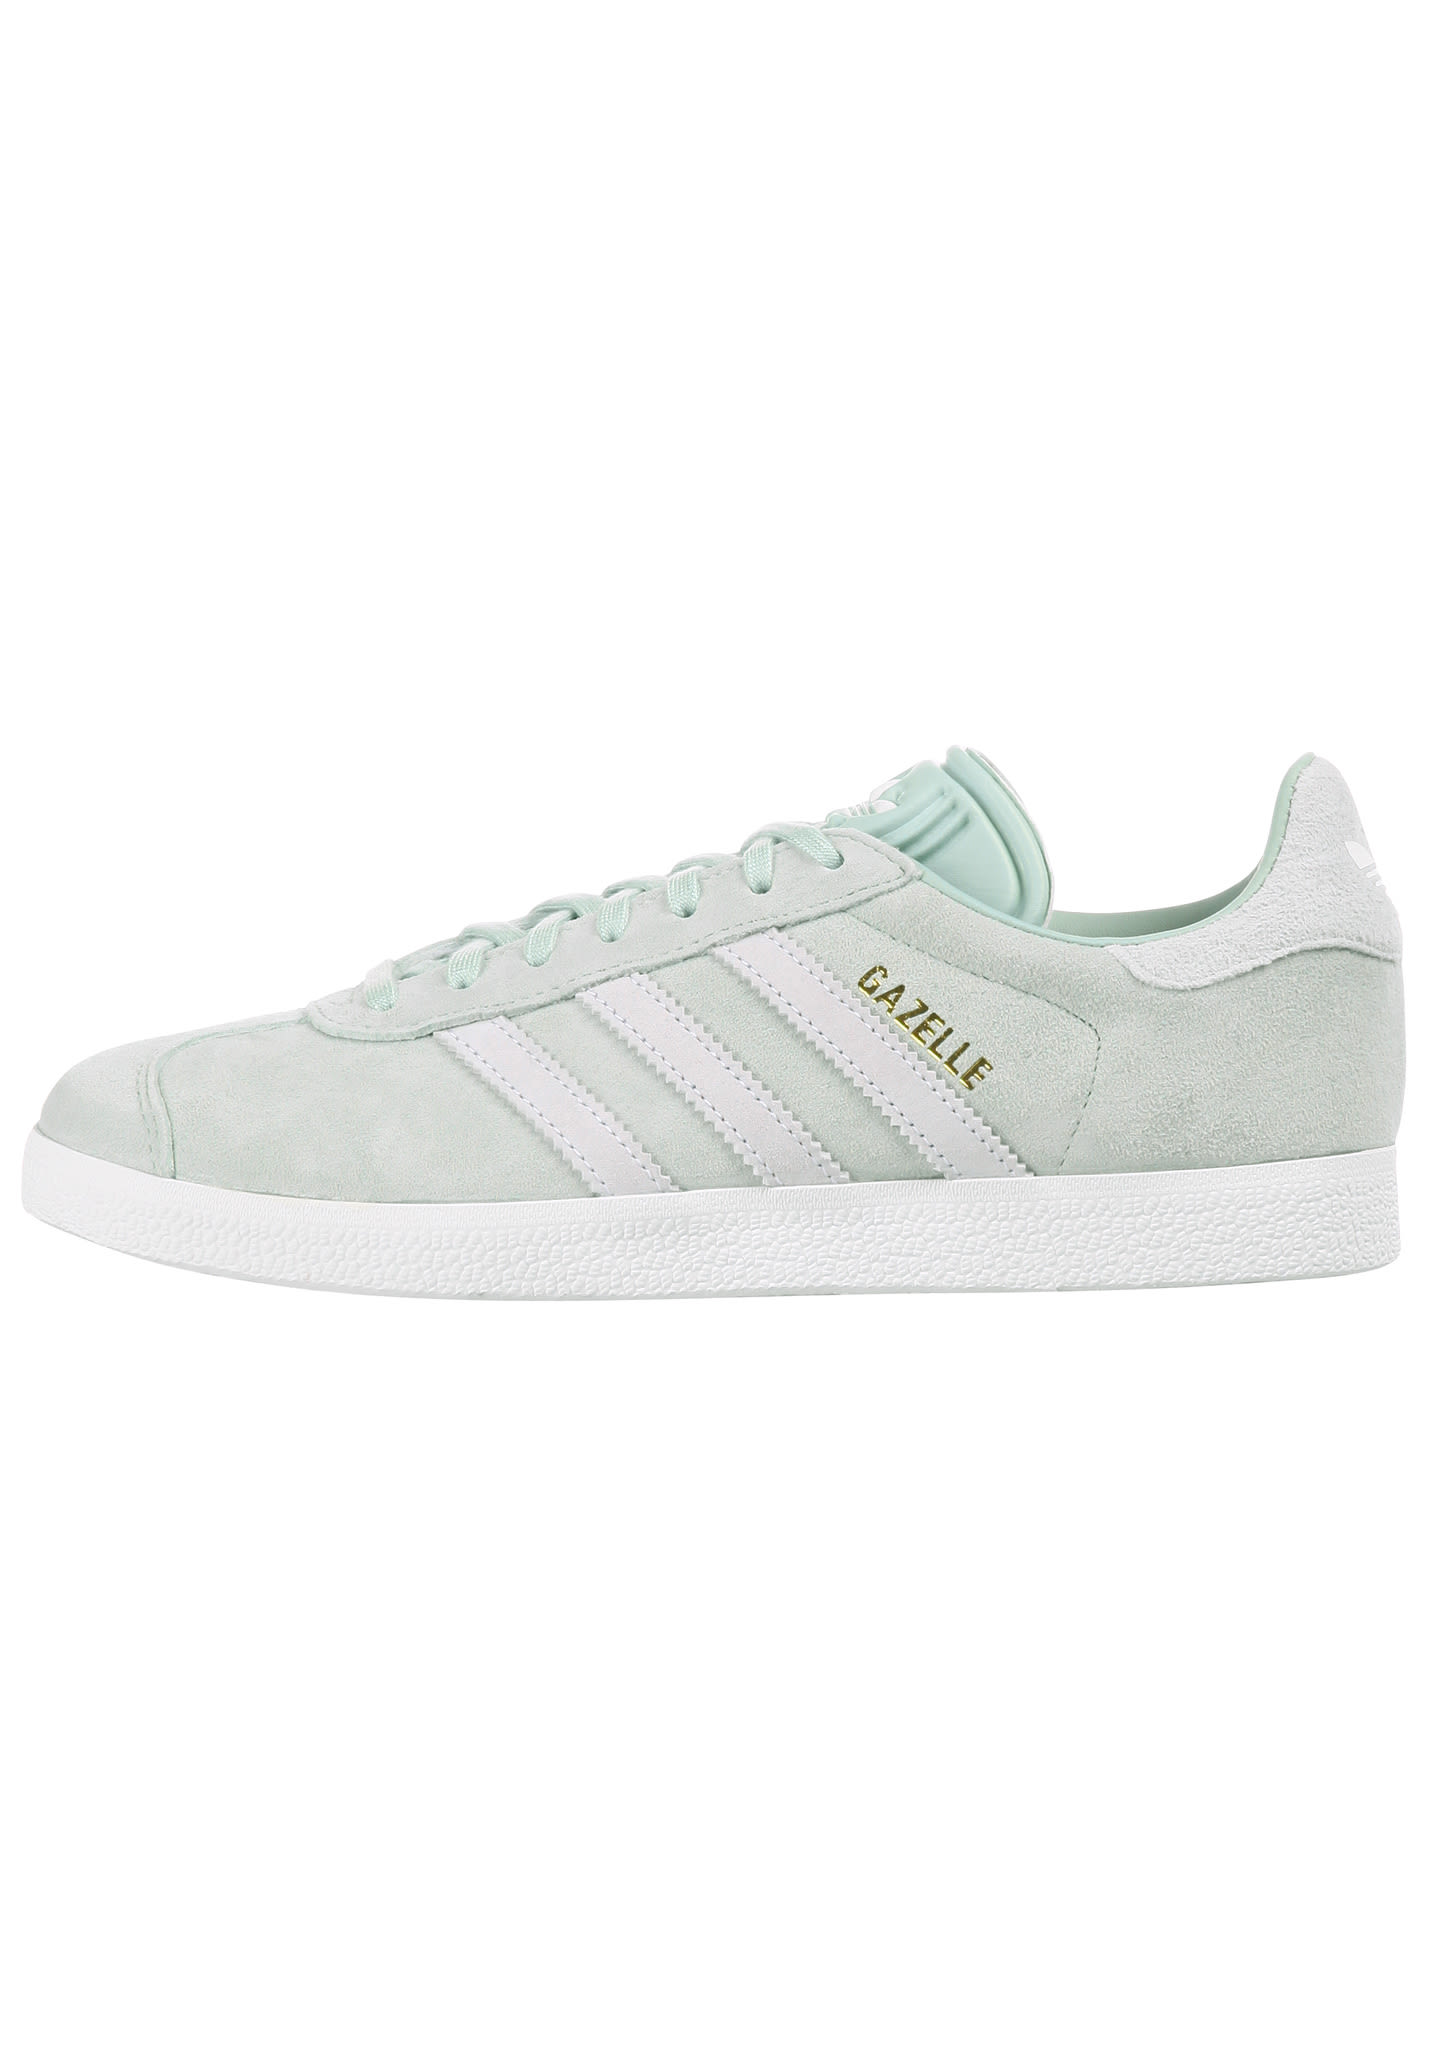 e78f1c337ab ADIDAS ORIGINALS Gazelle - Sneakers for Women - Green - Planet Sports